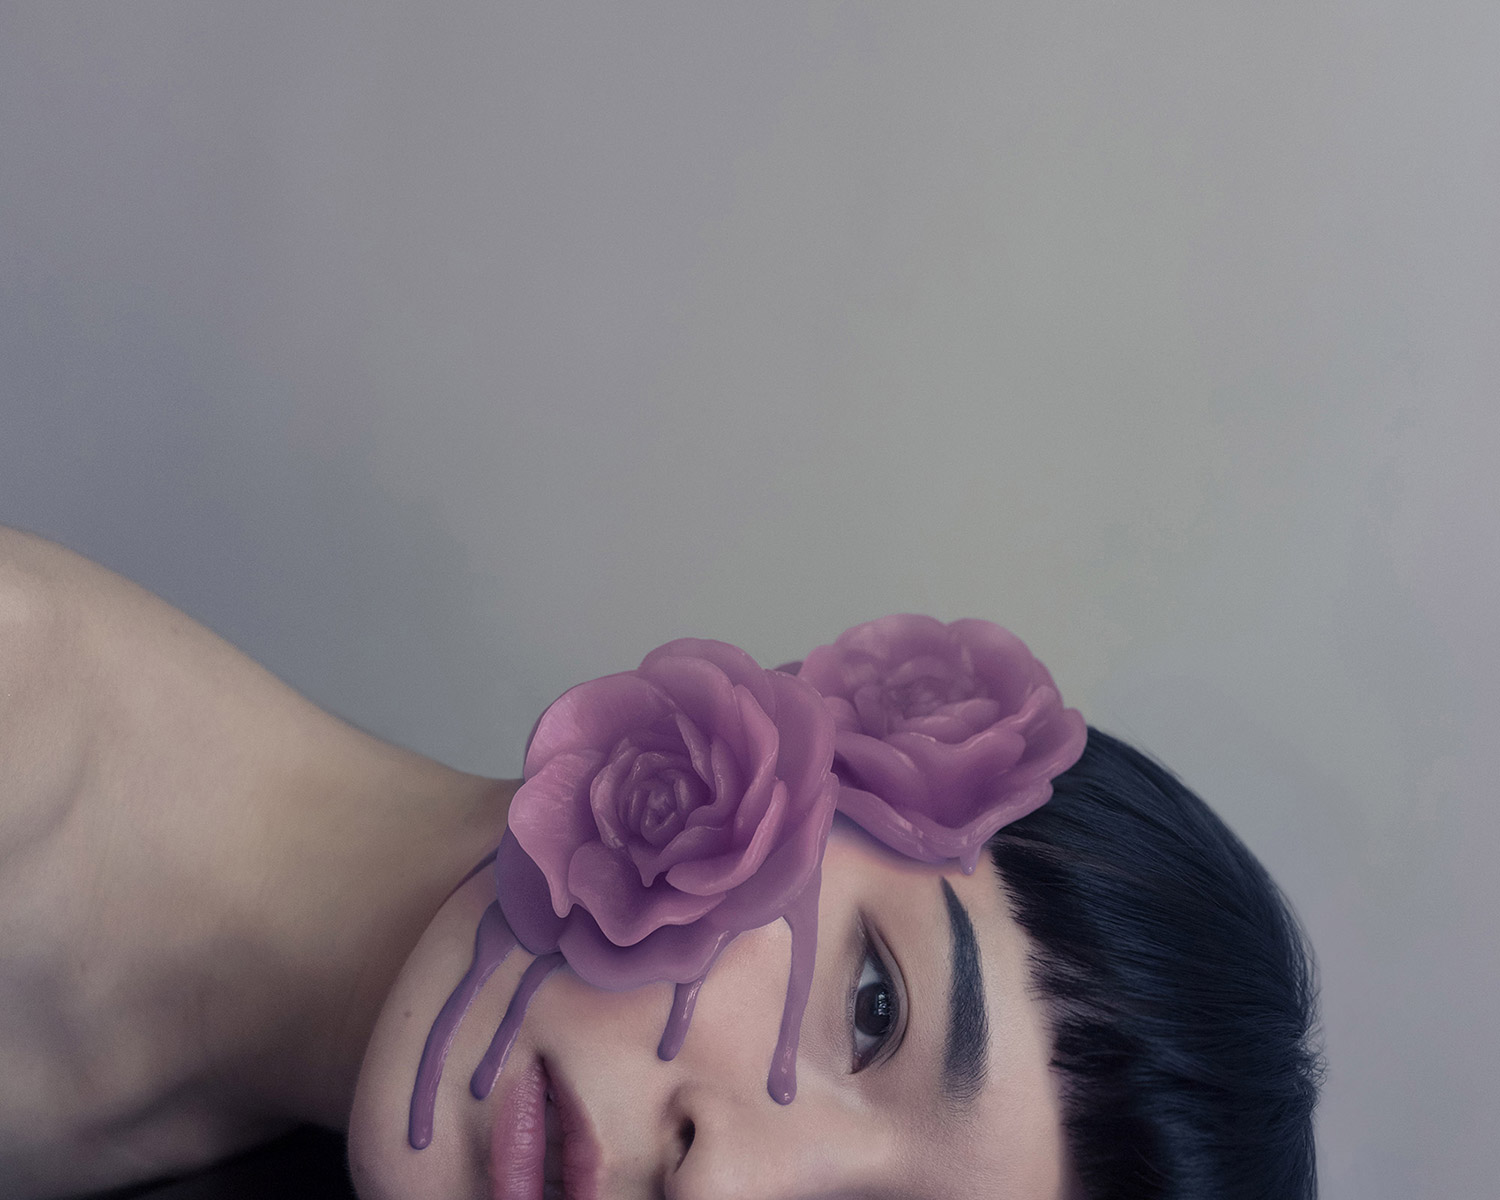 Brooke DiDonato, Roses - purple roses on face